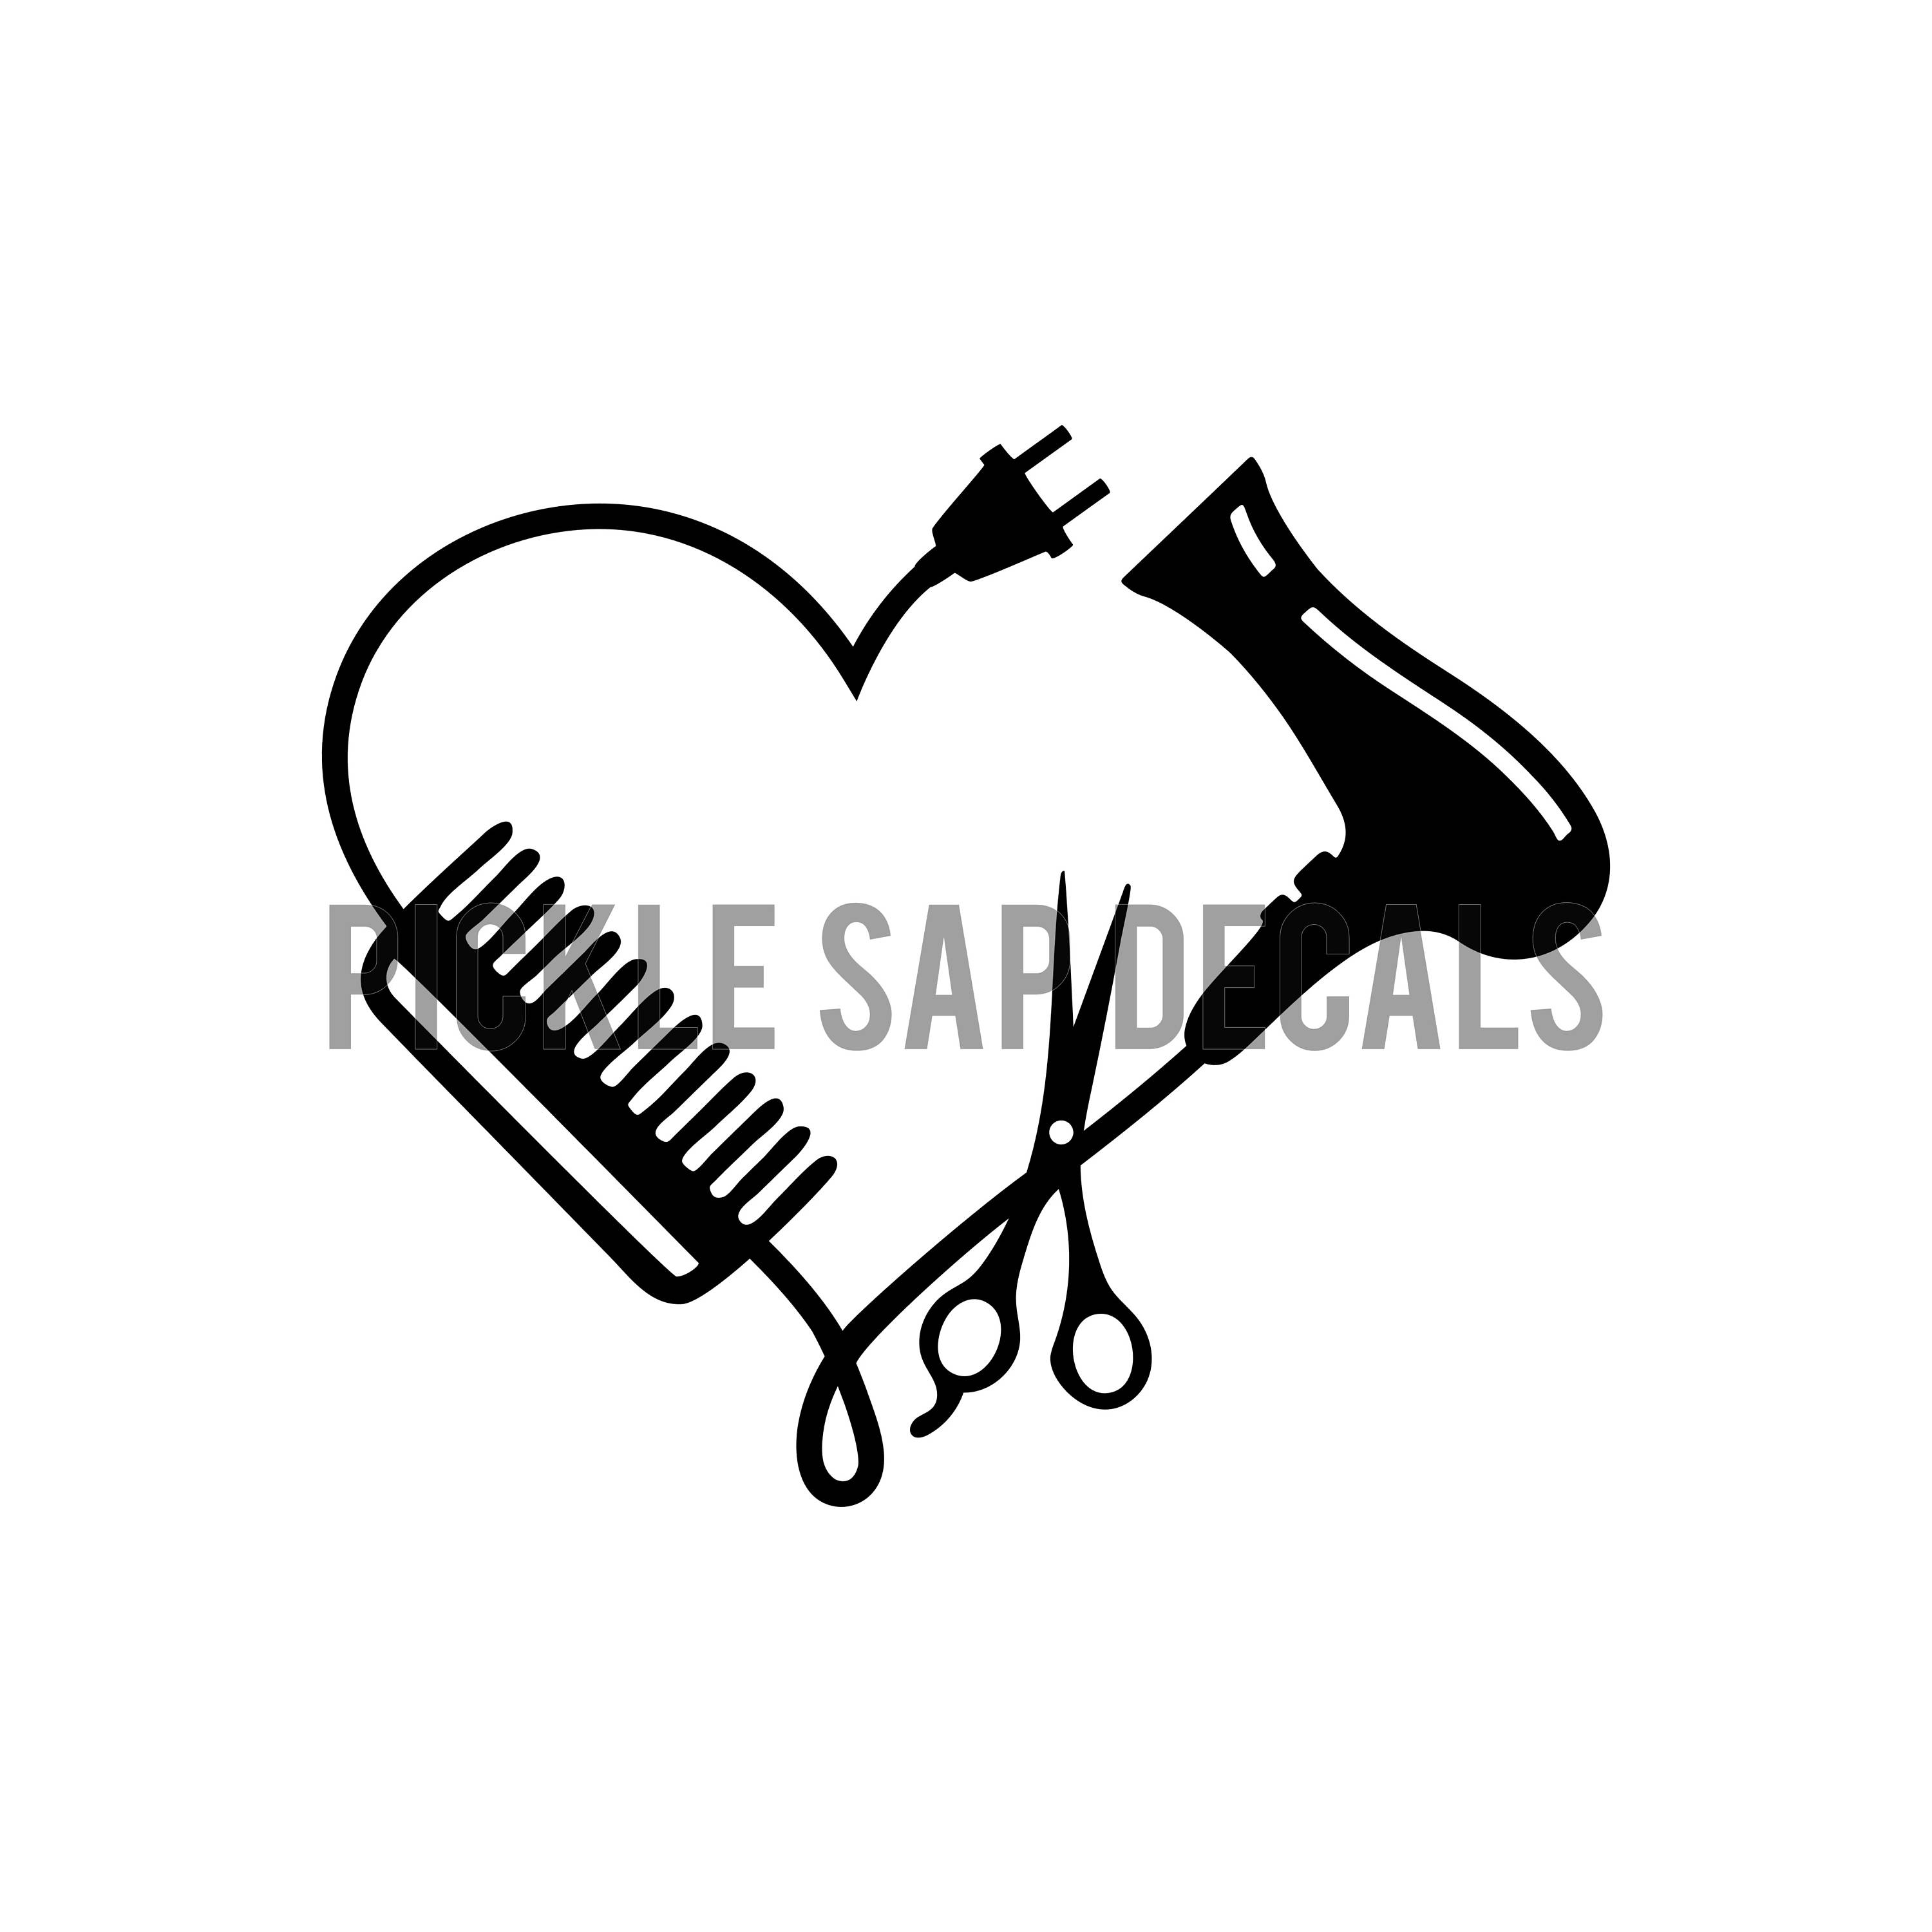 Blow Dryer And Scissors Clipart.